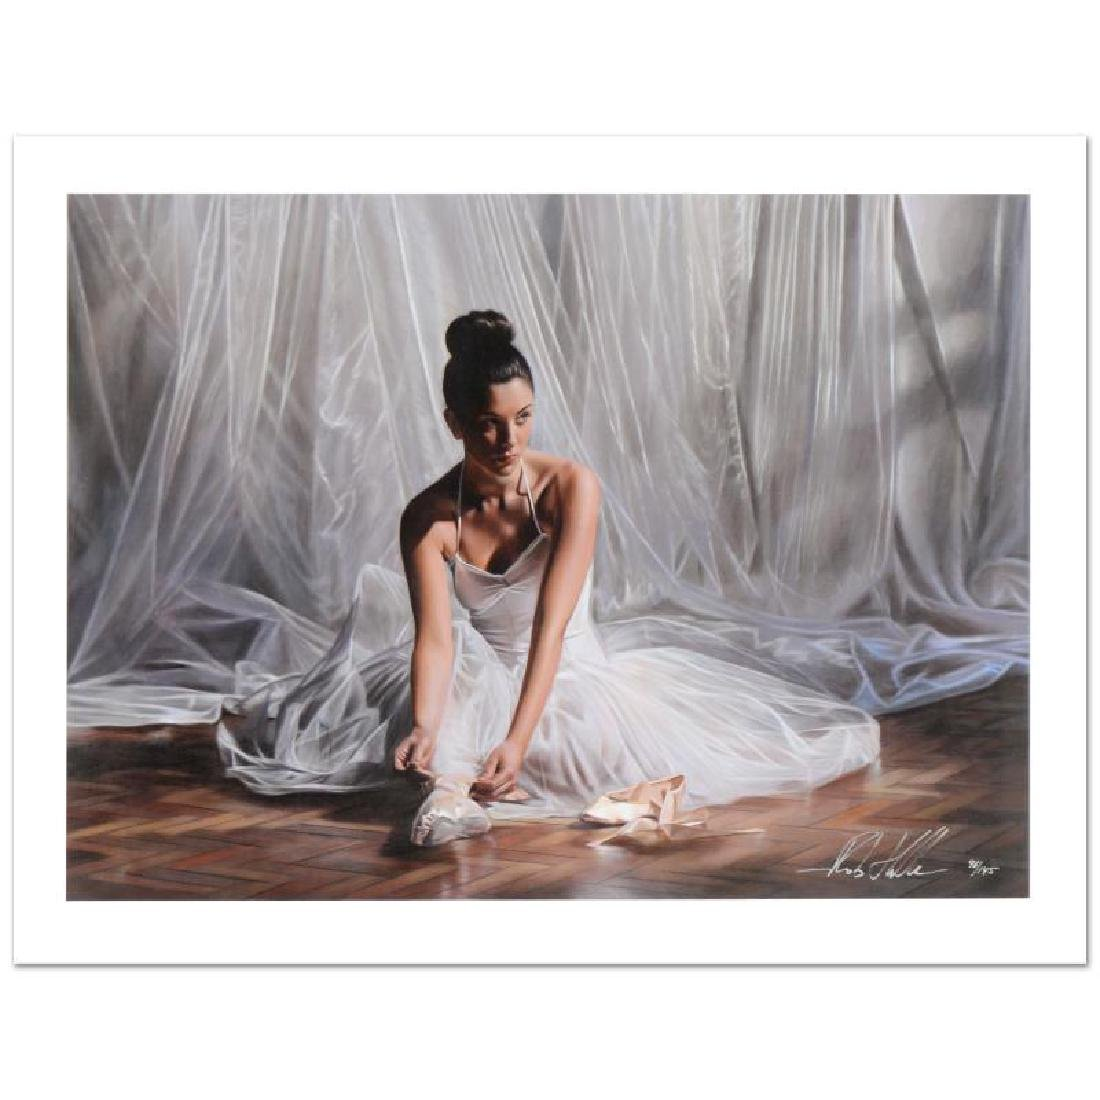 Light Through the Curtain by Hefferan, Rob